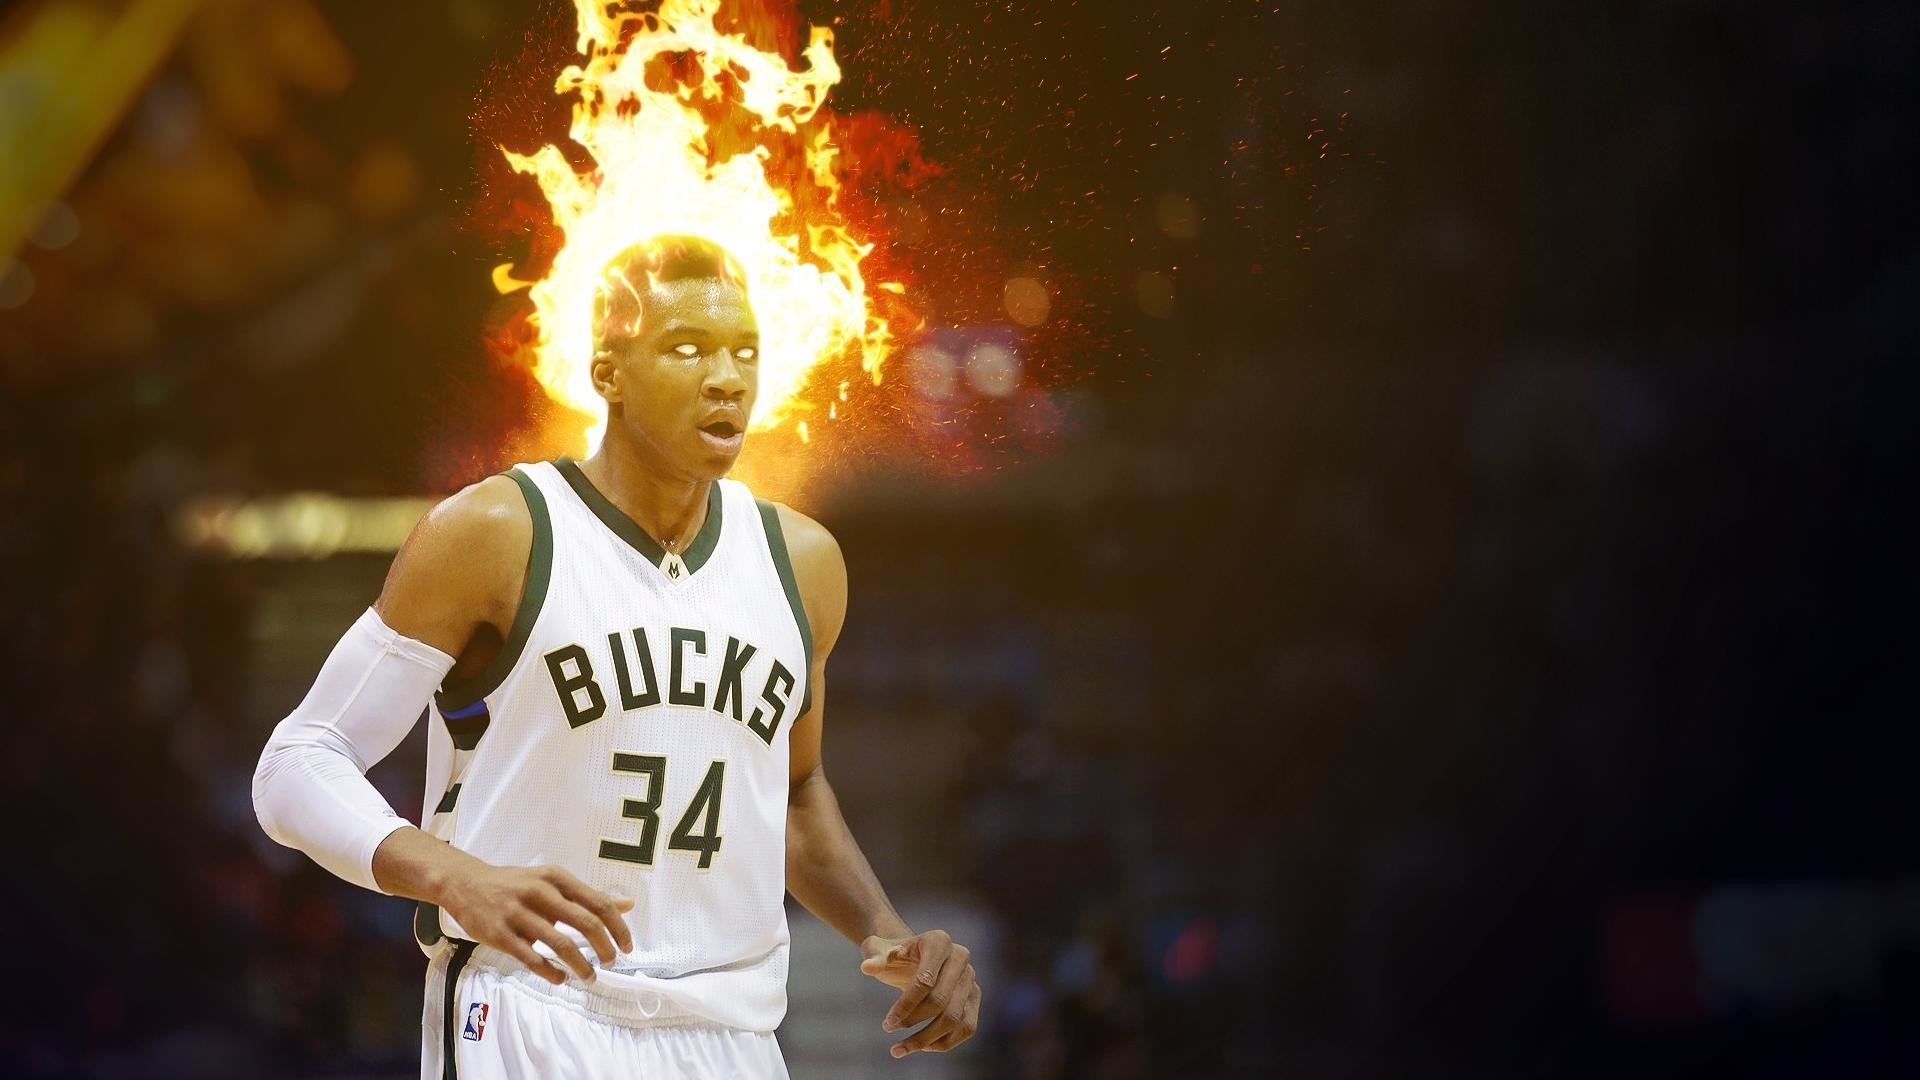 1920x1080 Giannis is on fire! [Wallpaper ] ...